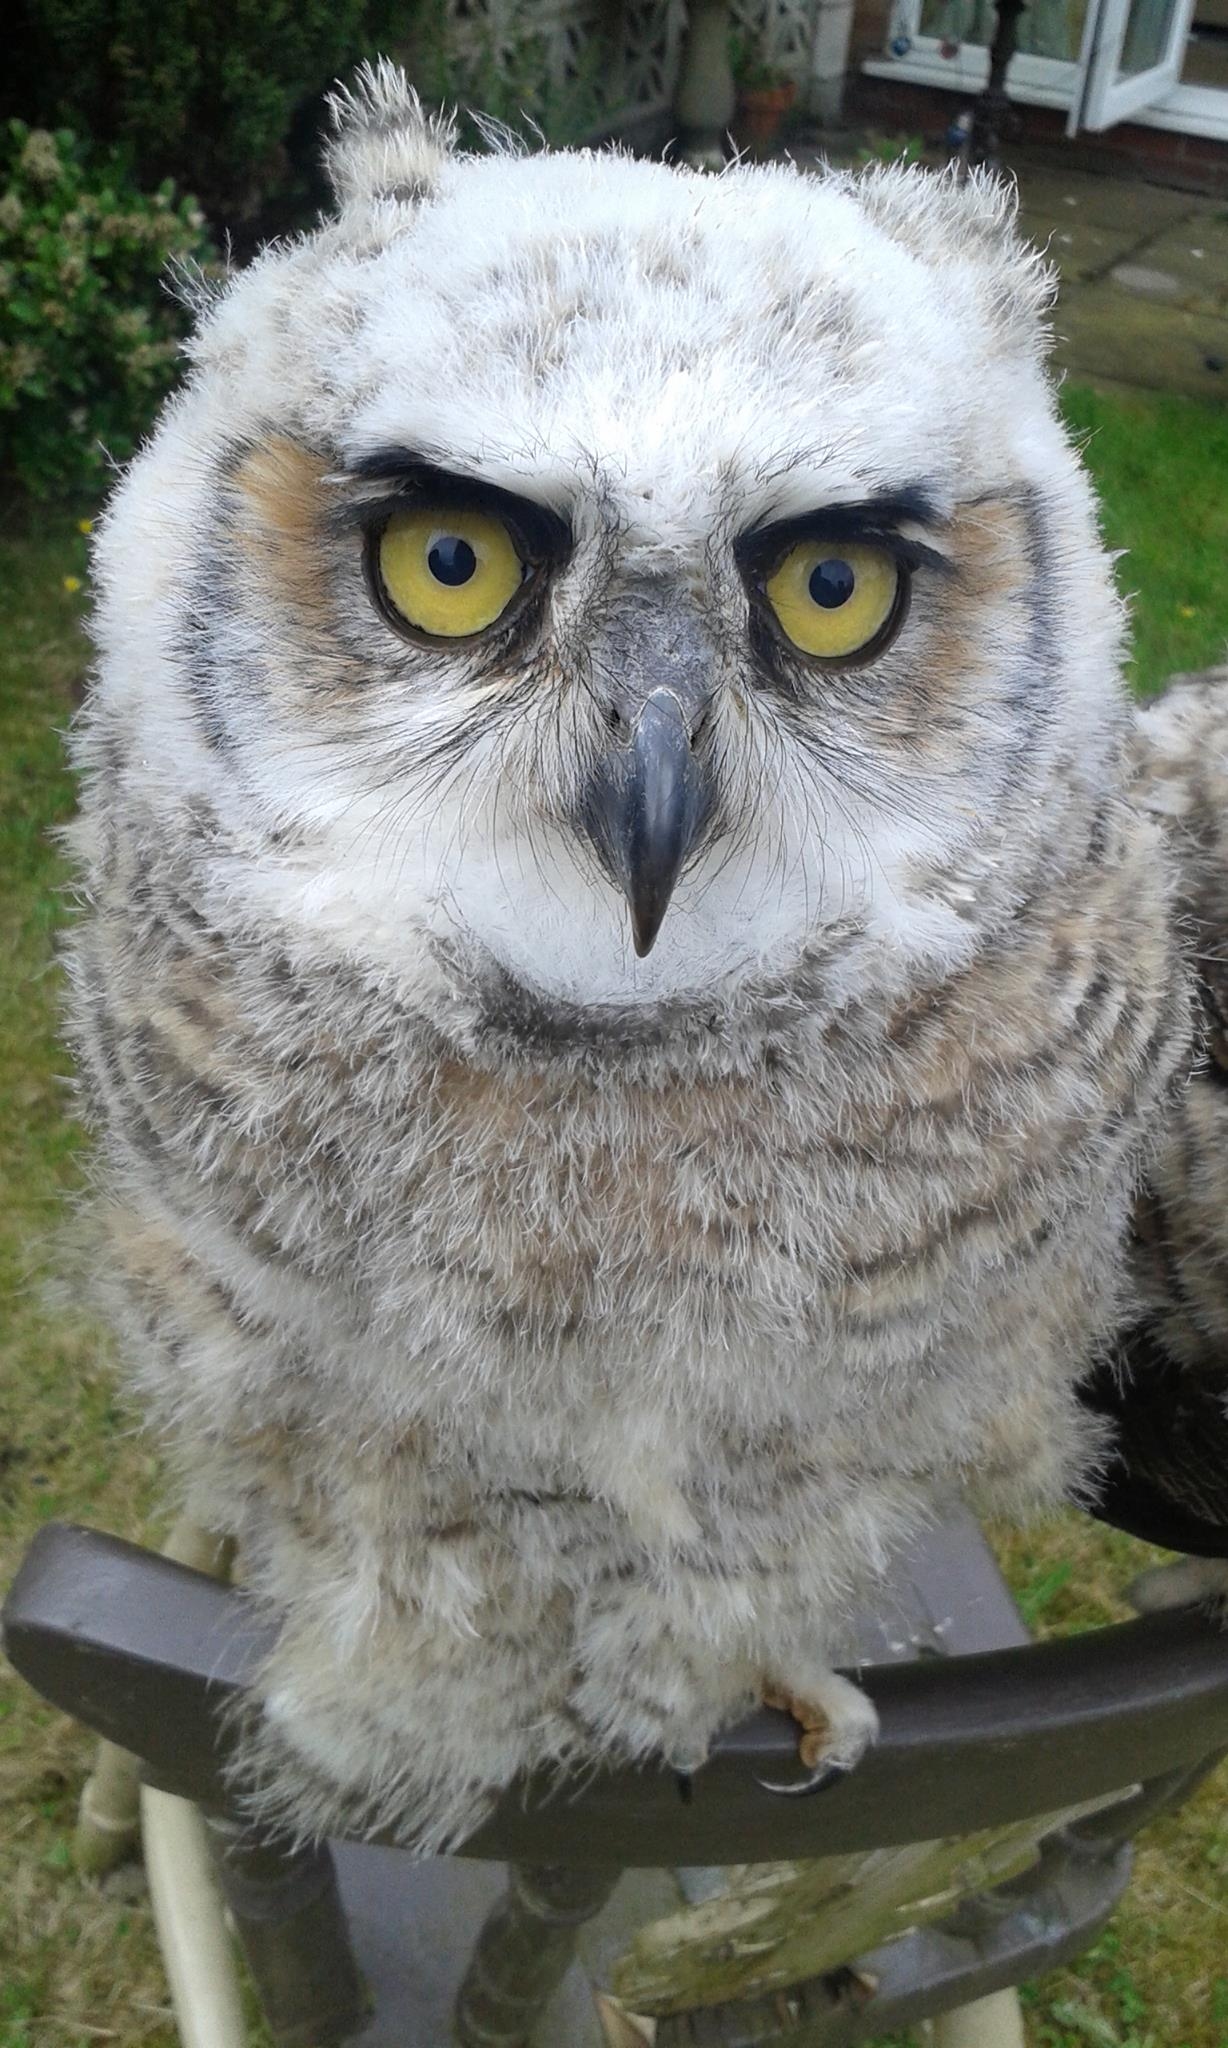 Stinky the great horned owl